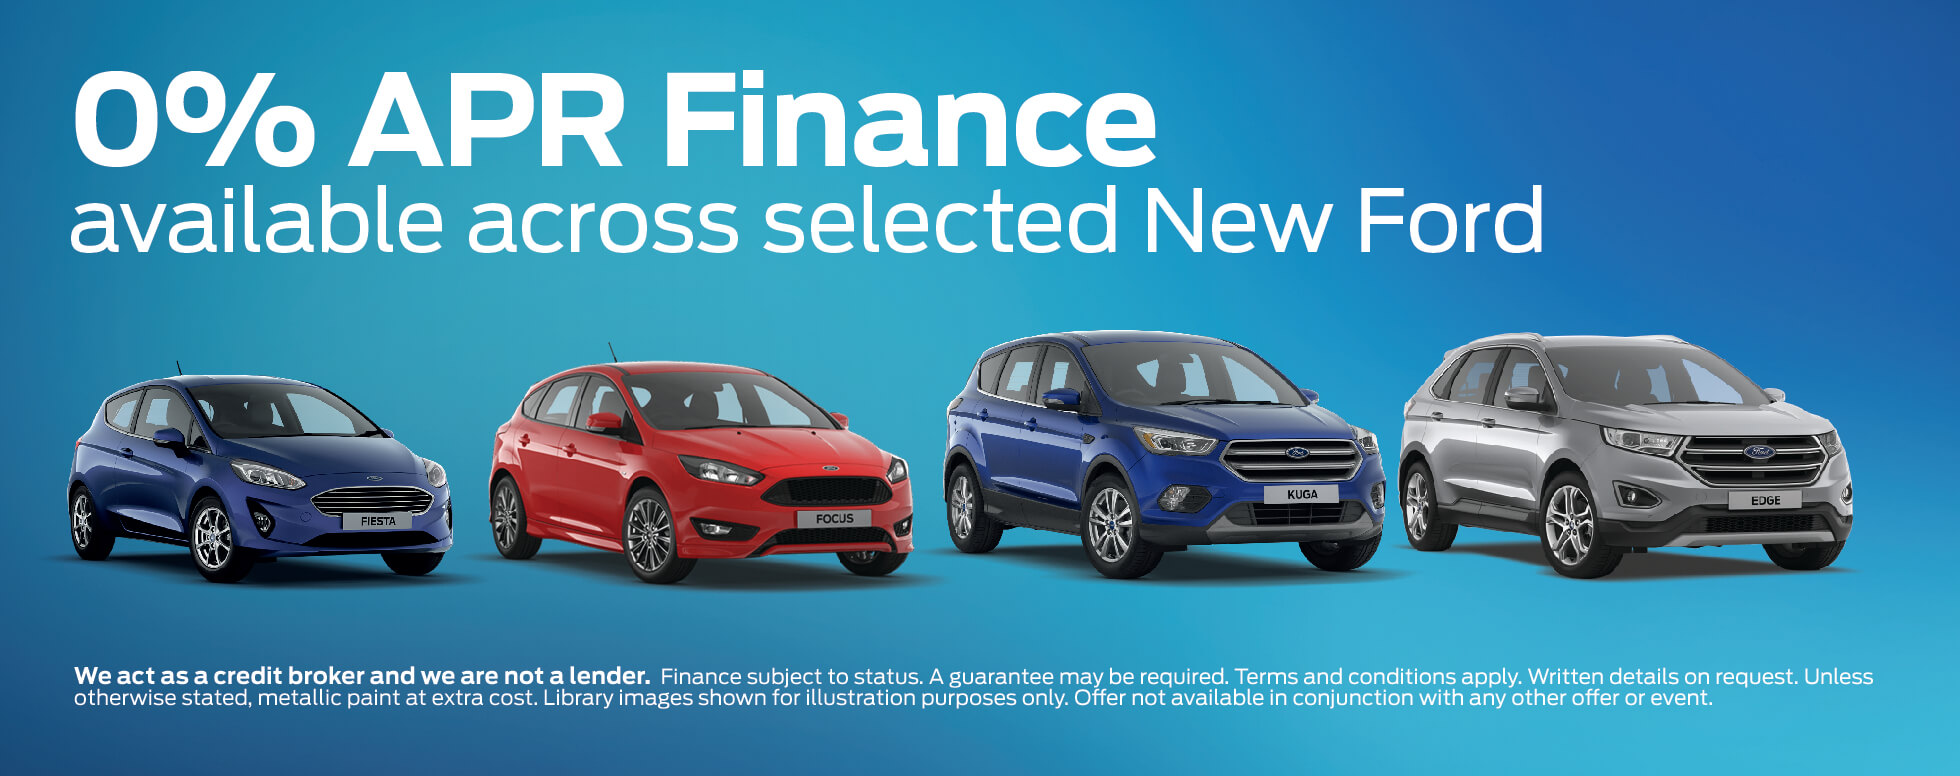 Ford 0% APR Finance BB